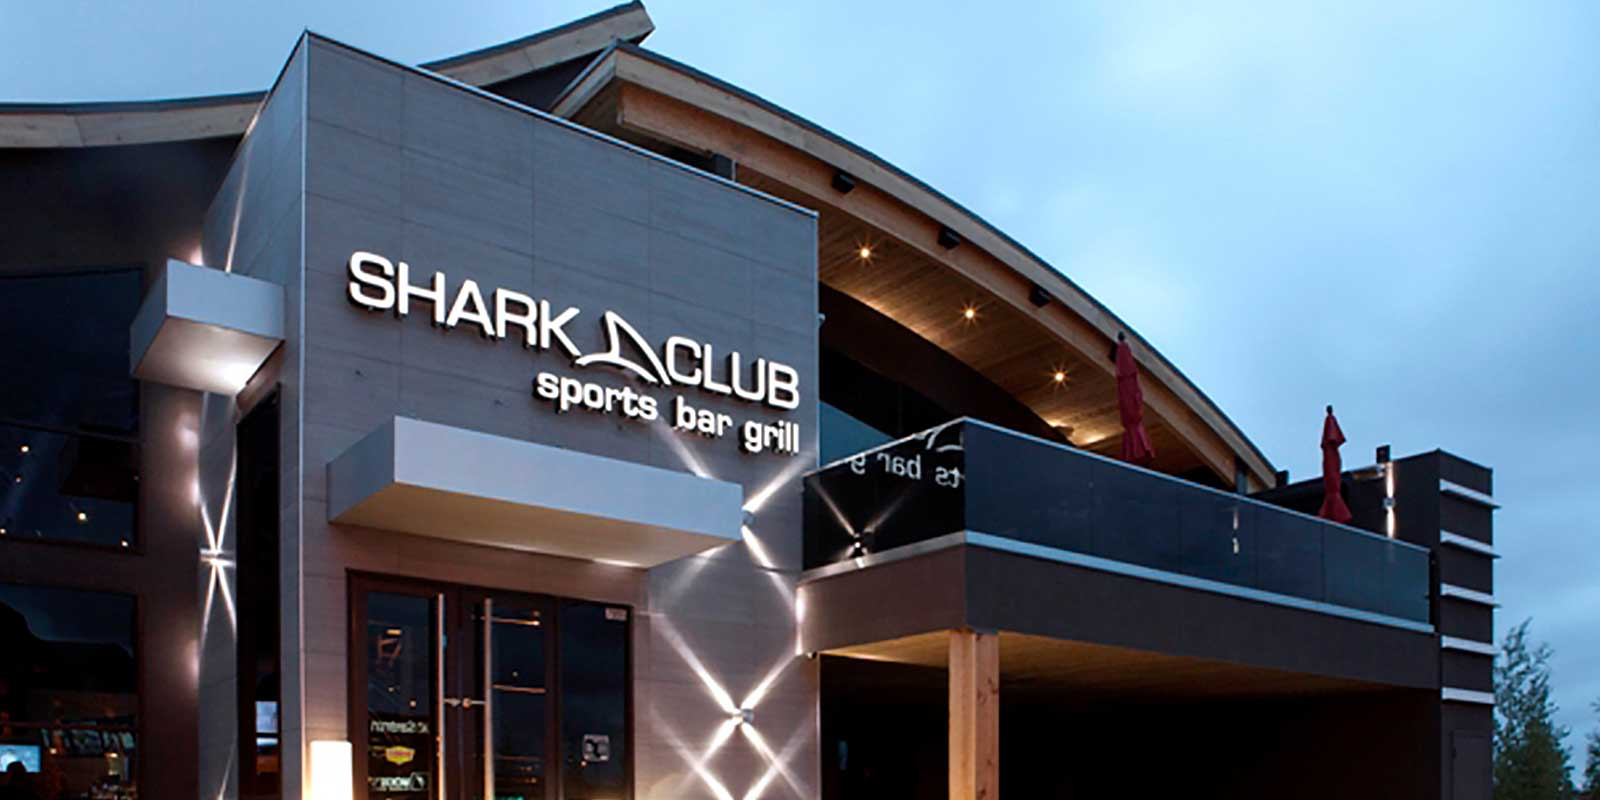 Shark Club Sports Bar & Grill - Calgary Deerfoot Meadows Gallery 3